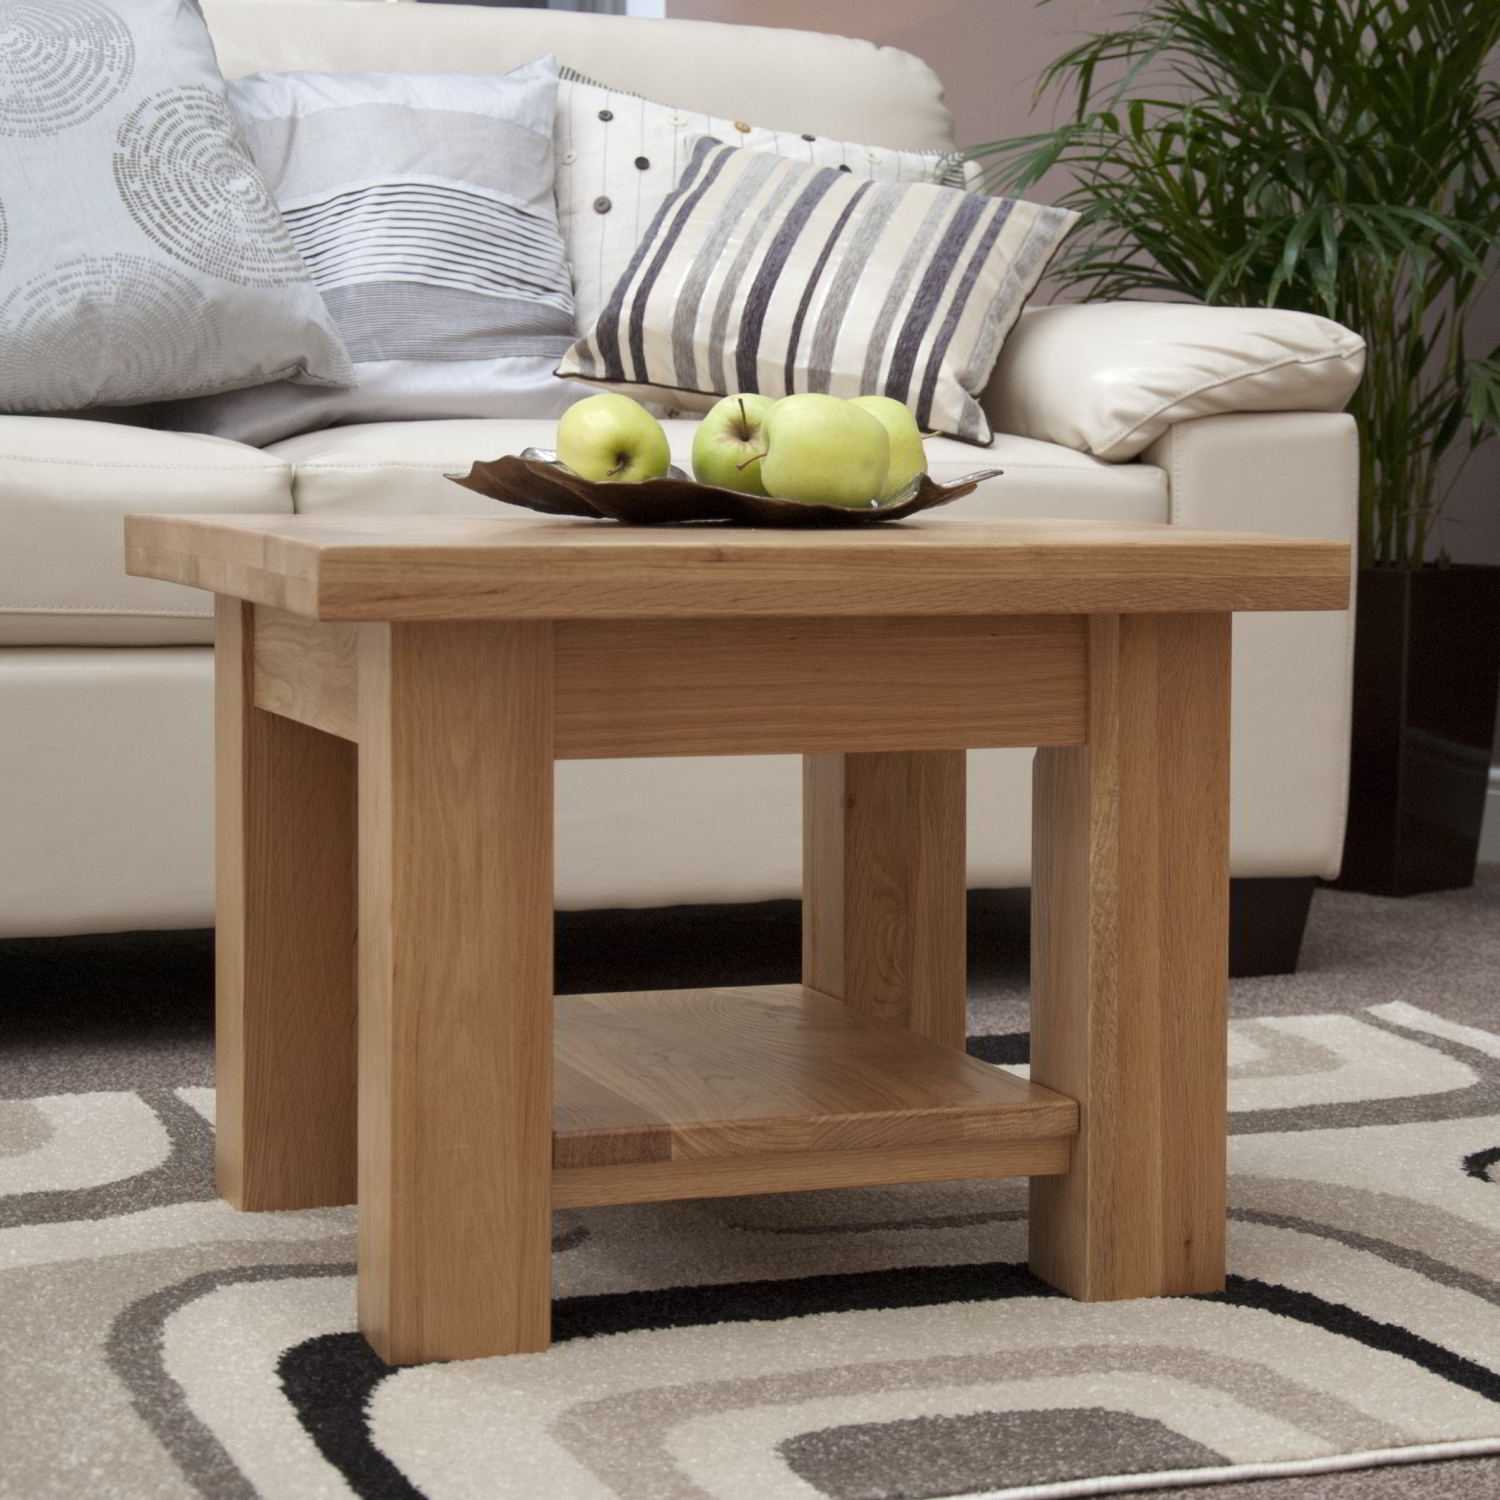 kingston solid oak living room lounge furniture small square coffee table | ebay